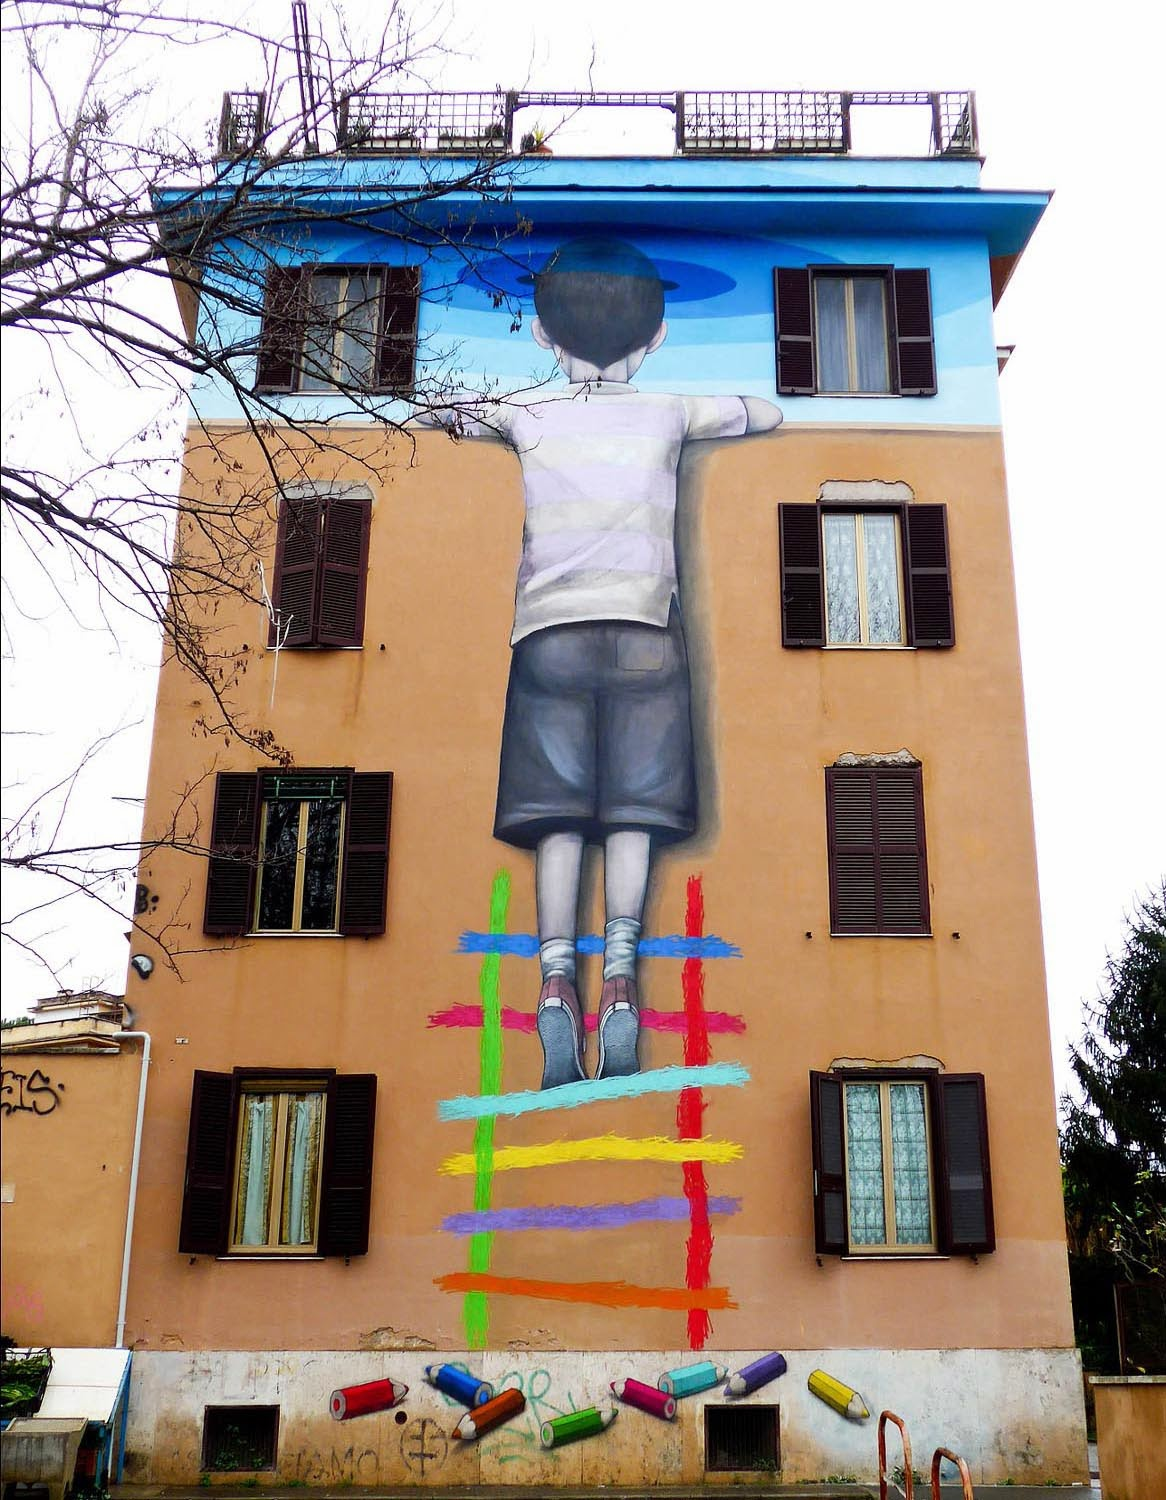 Seth Globepainter is currently in Italy where he just finished working on a brand new piece in the Tor Marancia district of Rome.